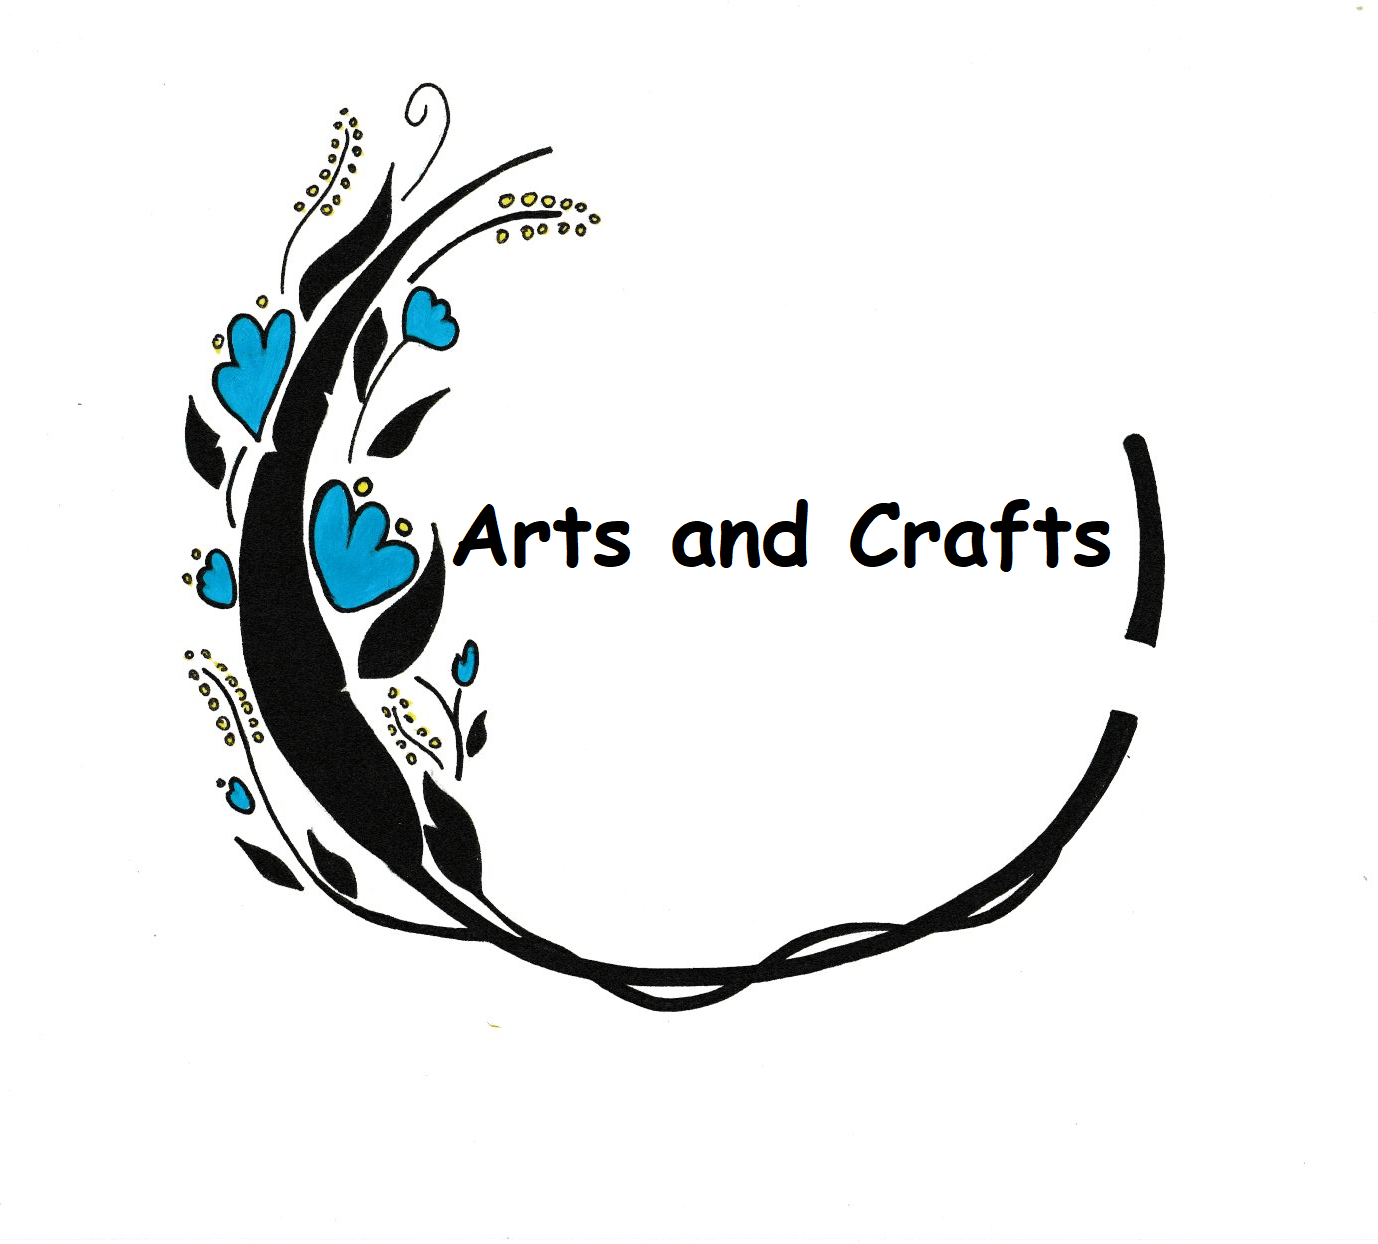 Arts and Crafts